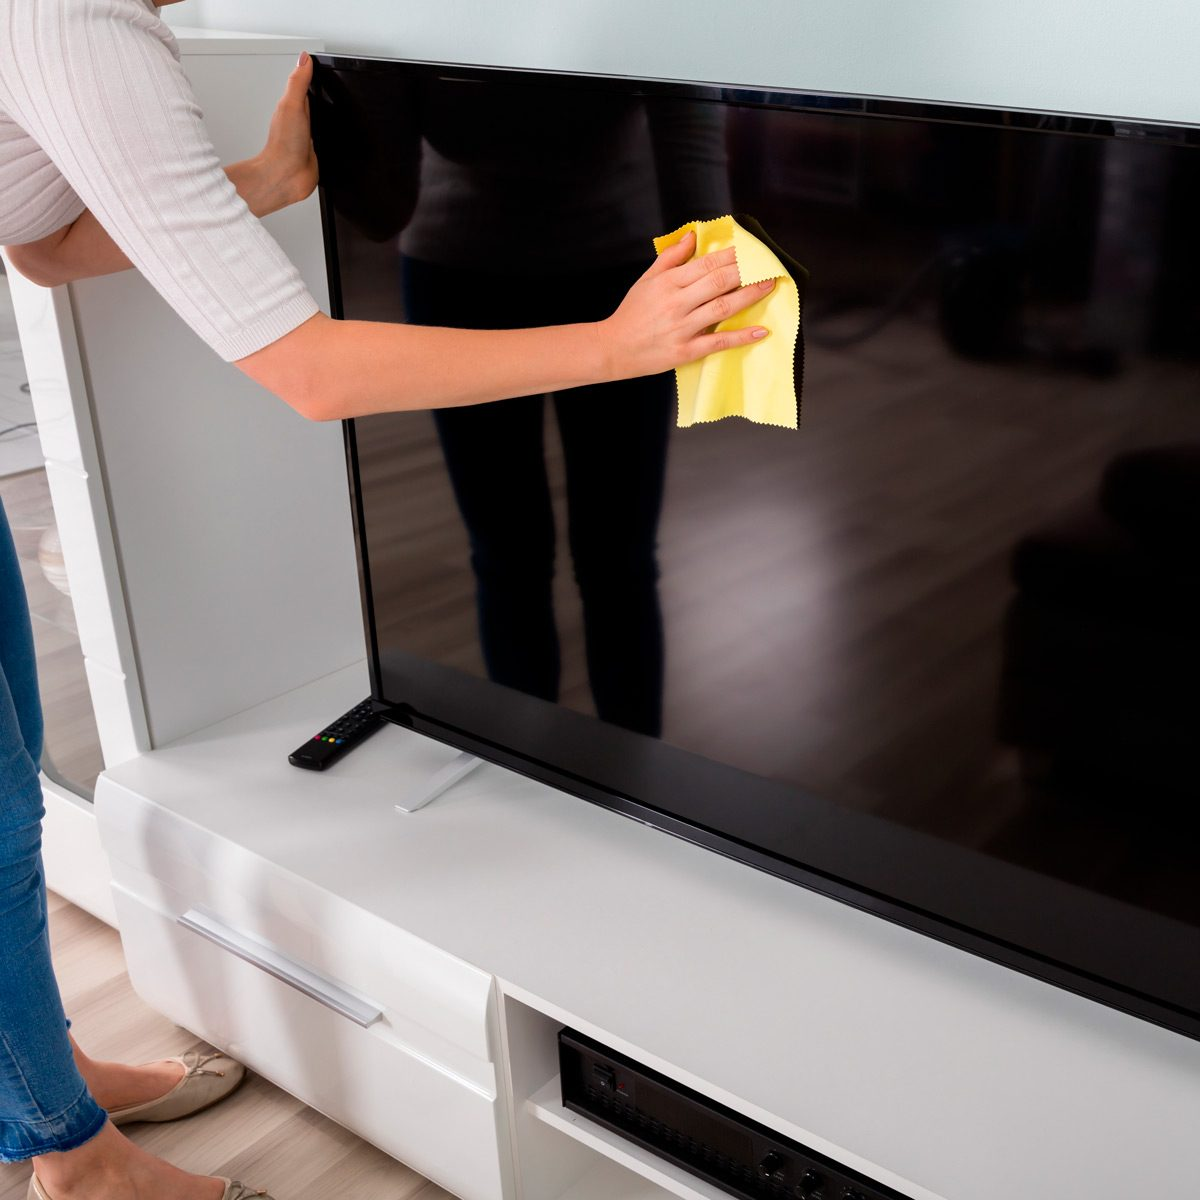 How to Clean a TV Screen